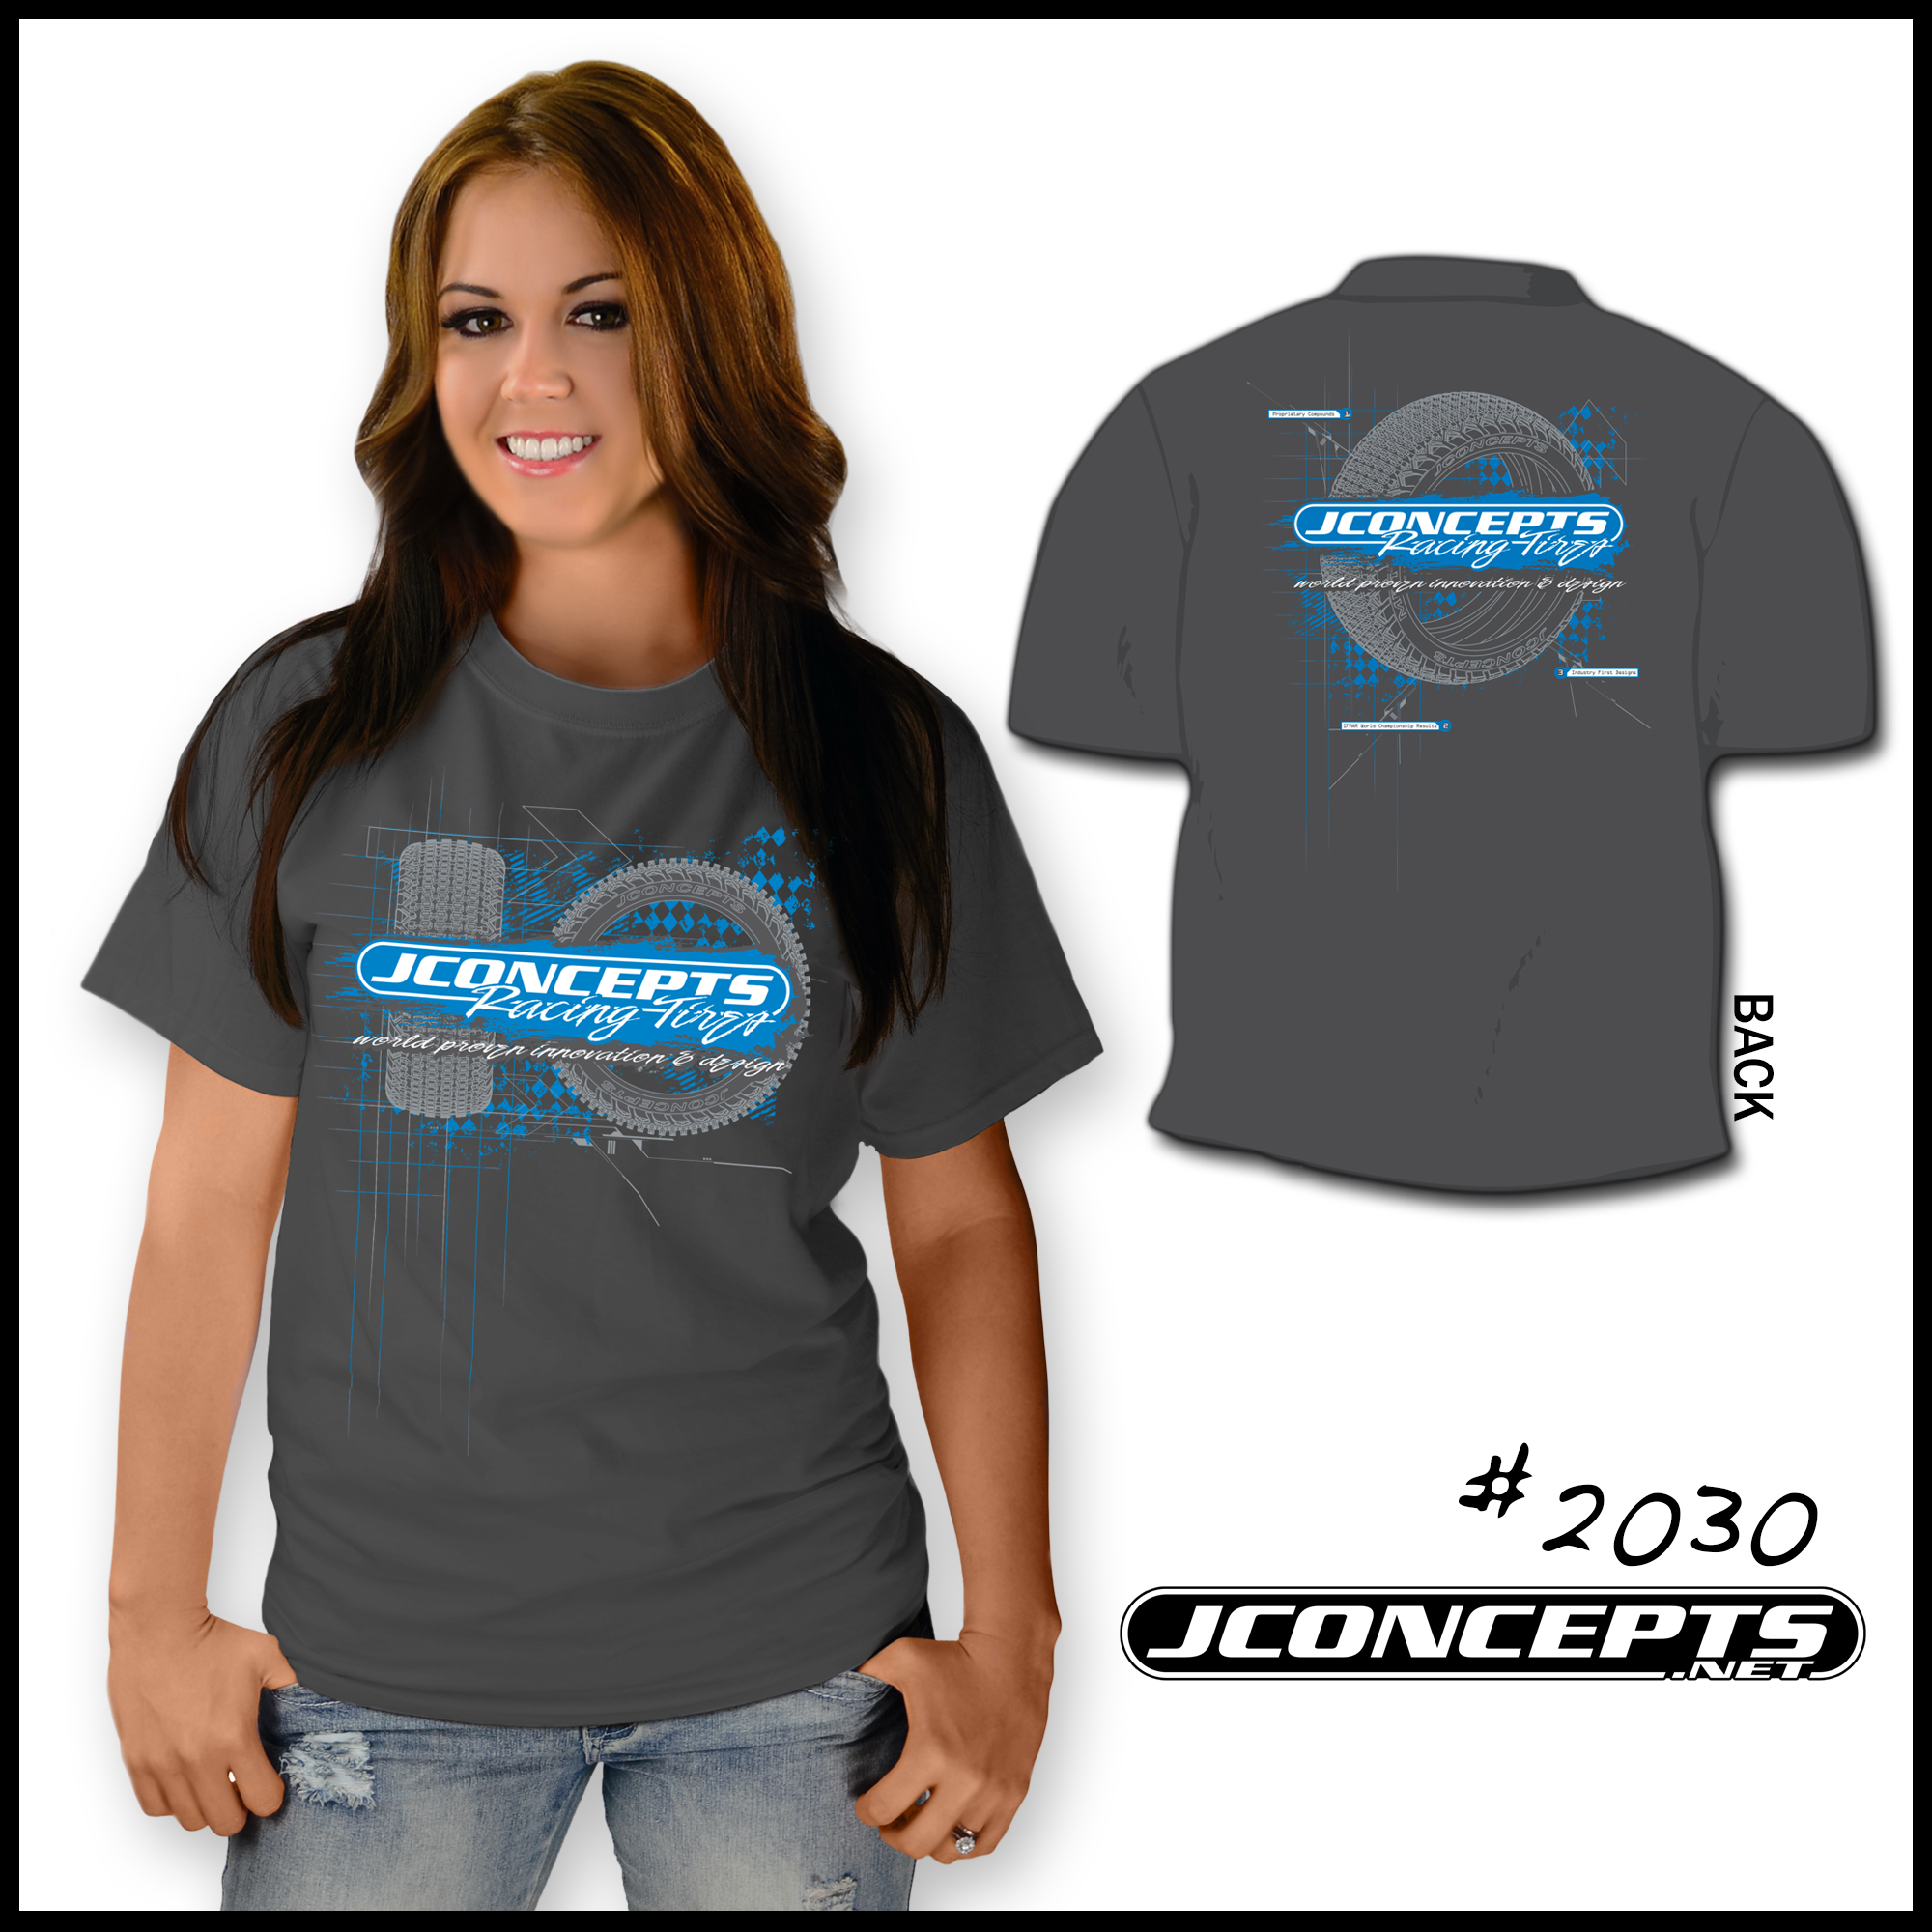 Racing T Shirt Design Ideas Stylized Racing T Shirt Design Celebrates Jconcepts Racing Tires